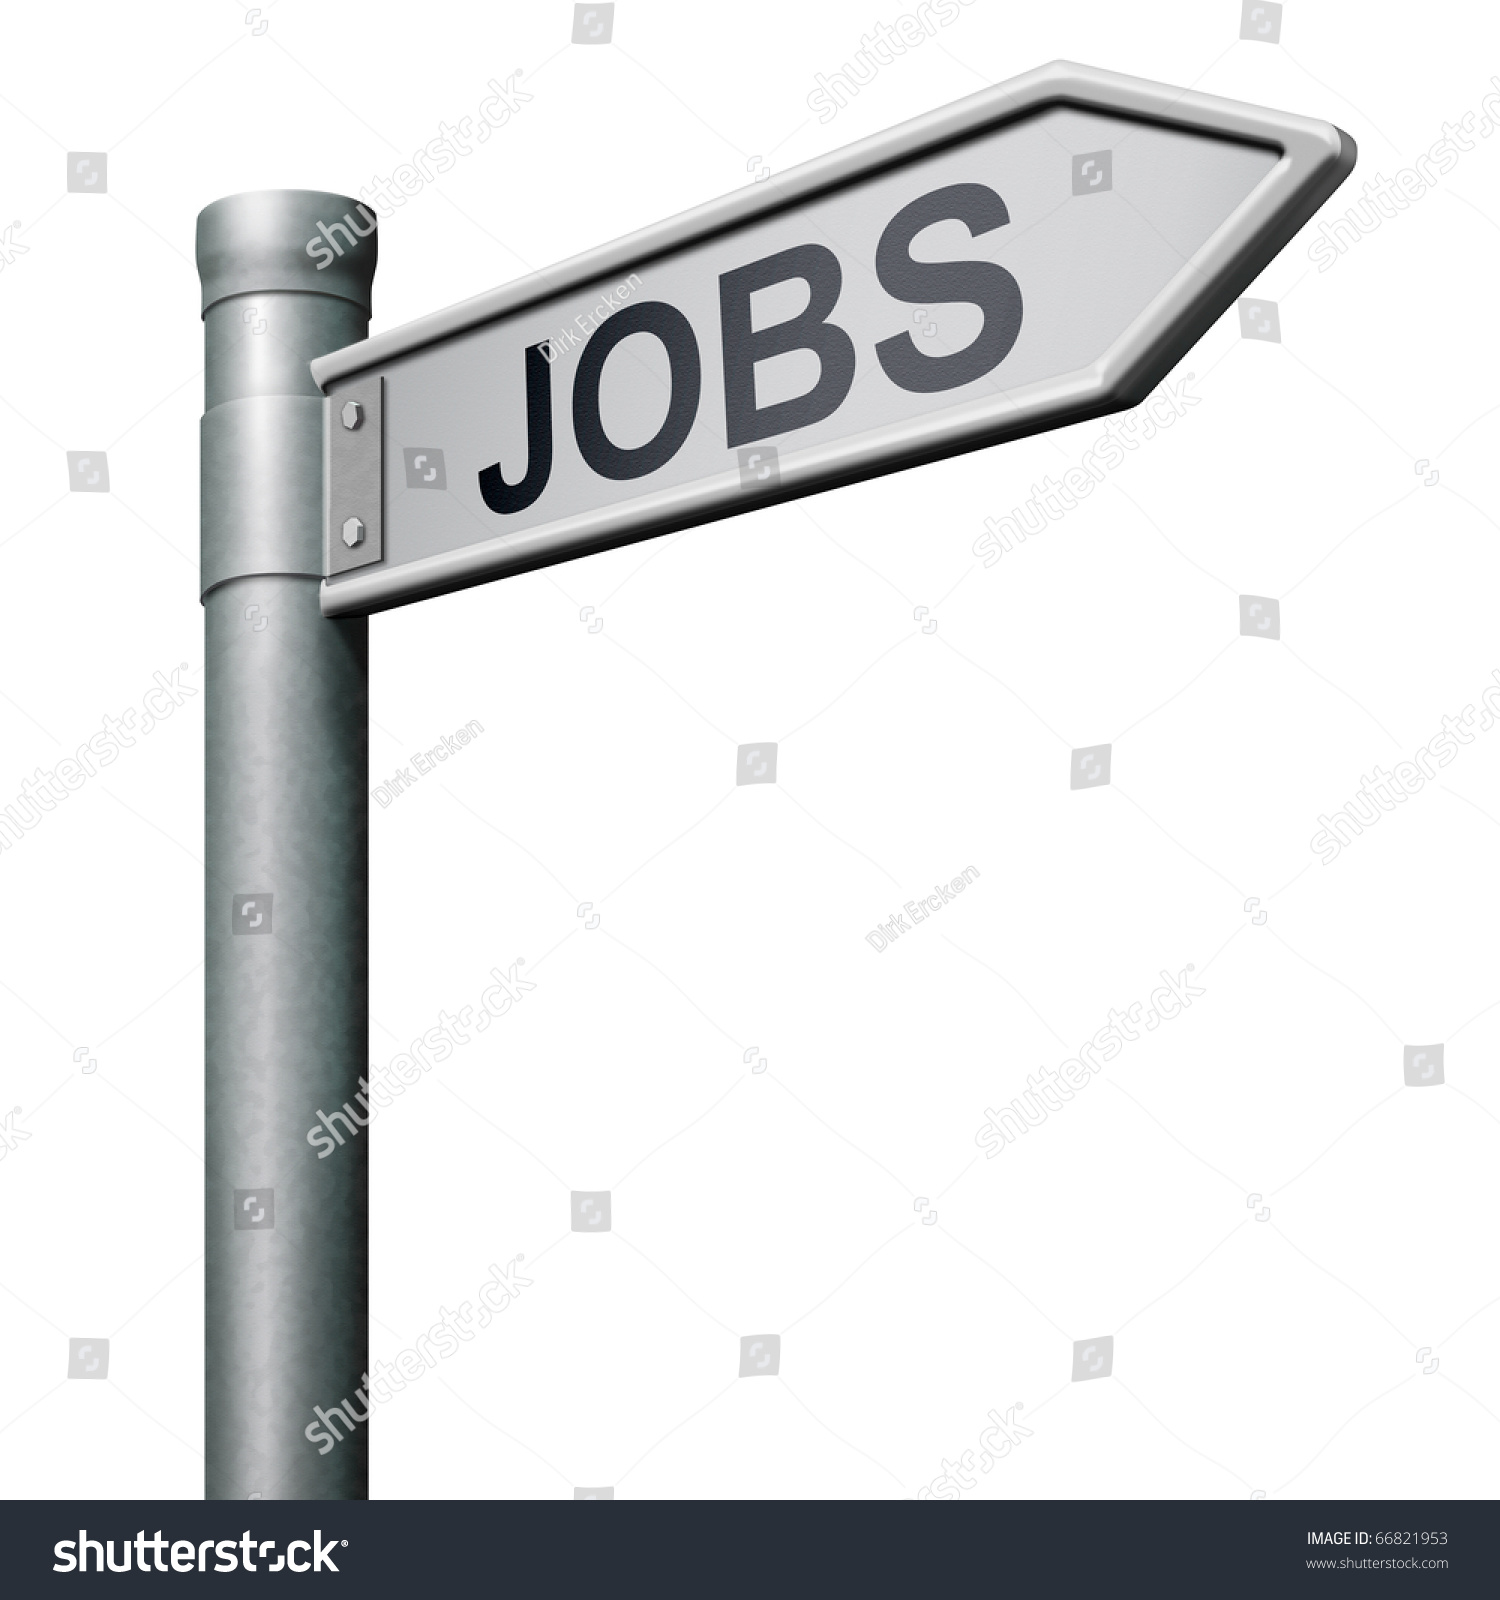 job search road sign vacancy stock illustration  job search road sign vacancy for jobs search job online job application help wanted hiring